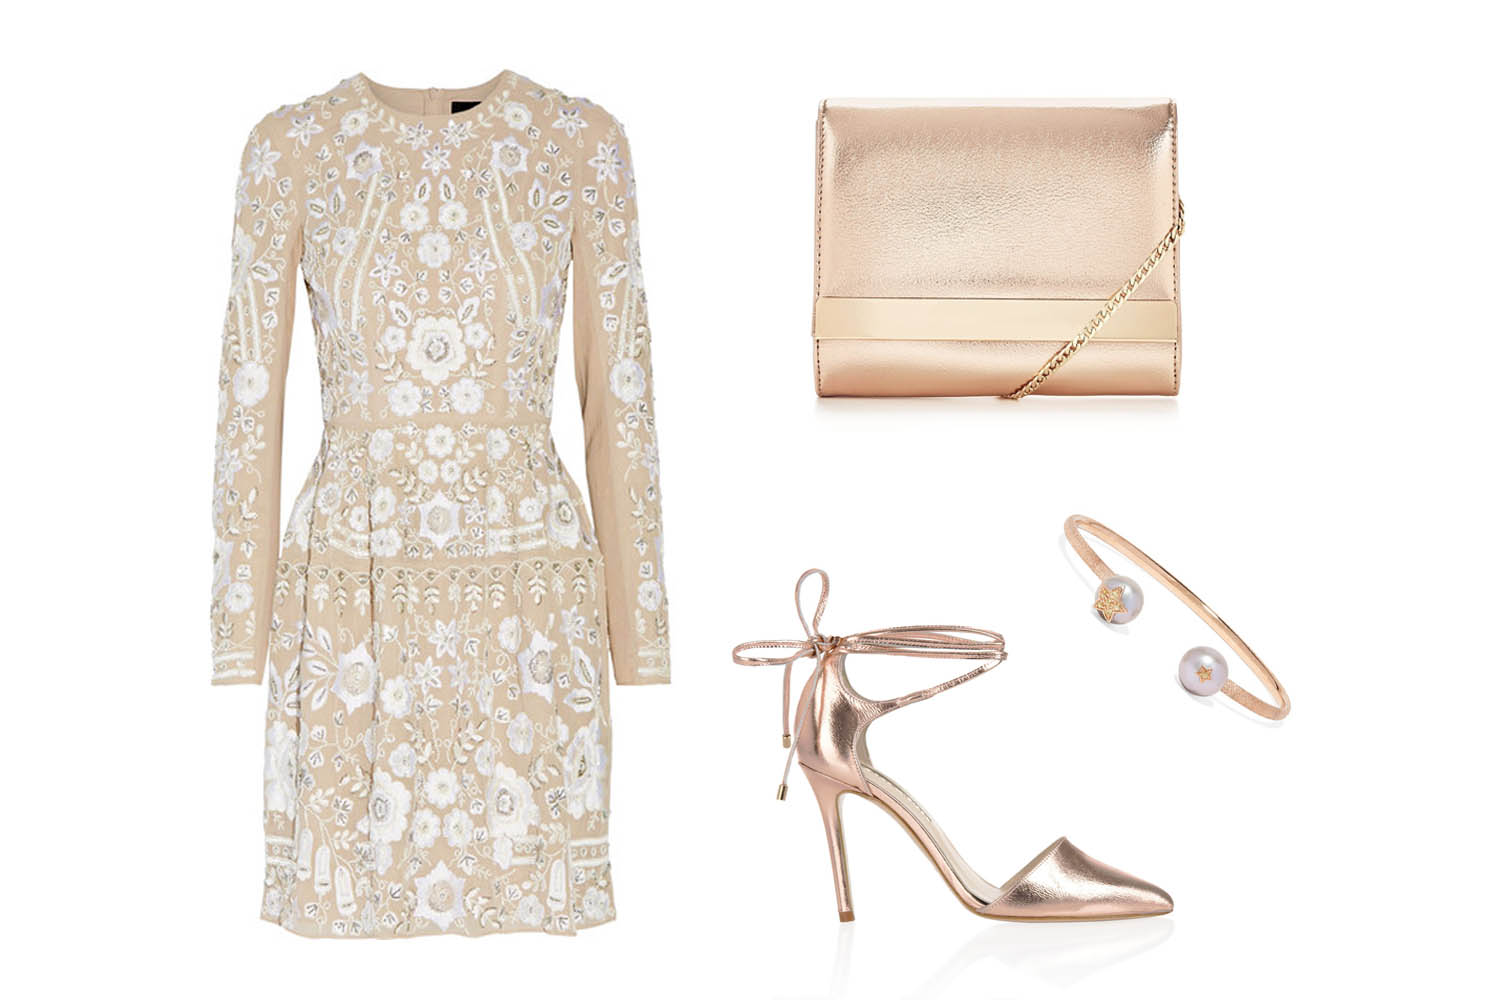 Needle and Thread snowdrop embellished embroidered Georgette mini dress, with Pecina Rose Gold Freya Rose shoes, mini shoulder chain metallic clutch bag and super stella cuff